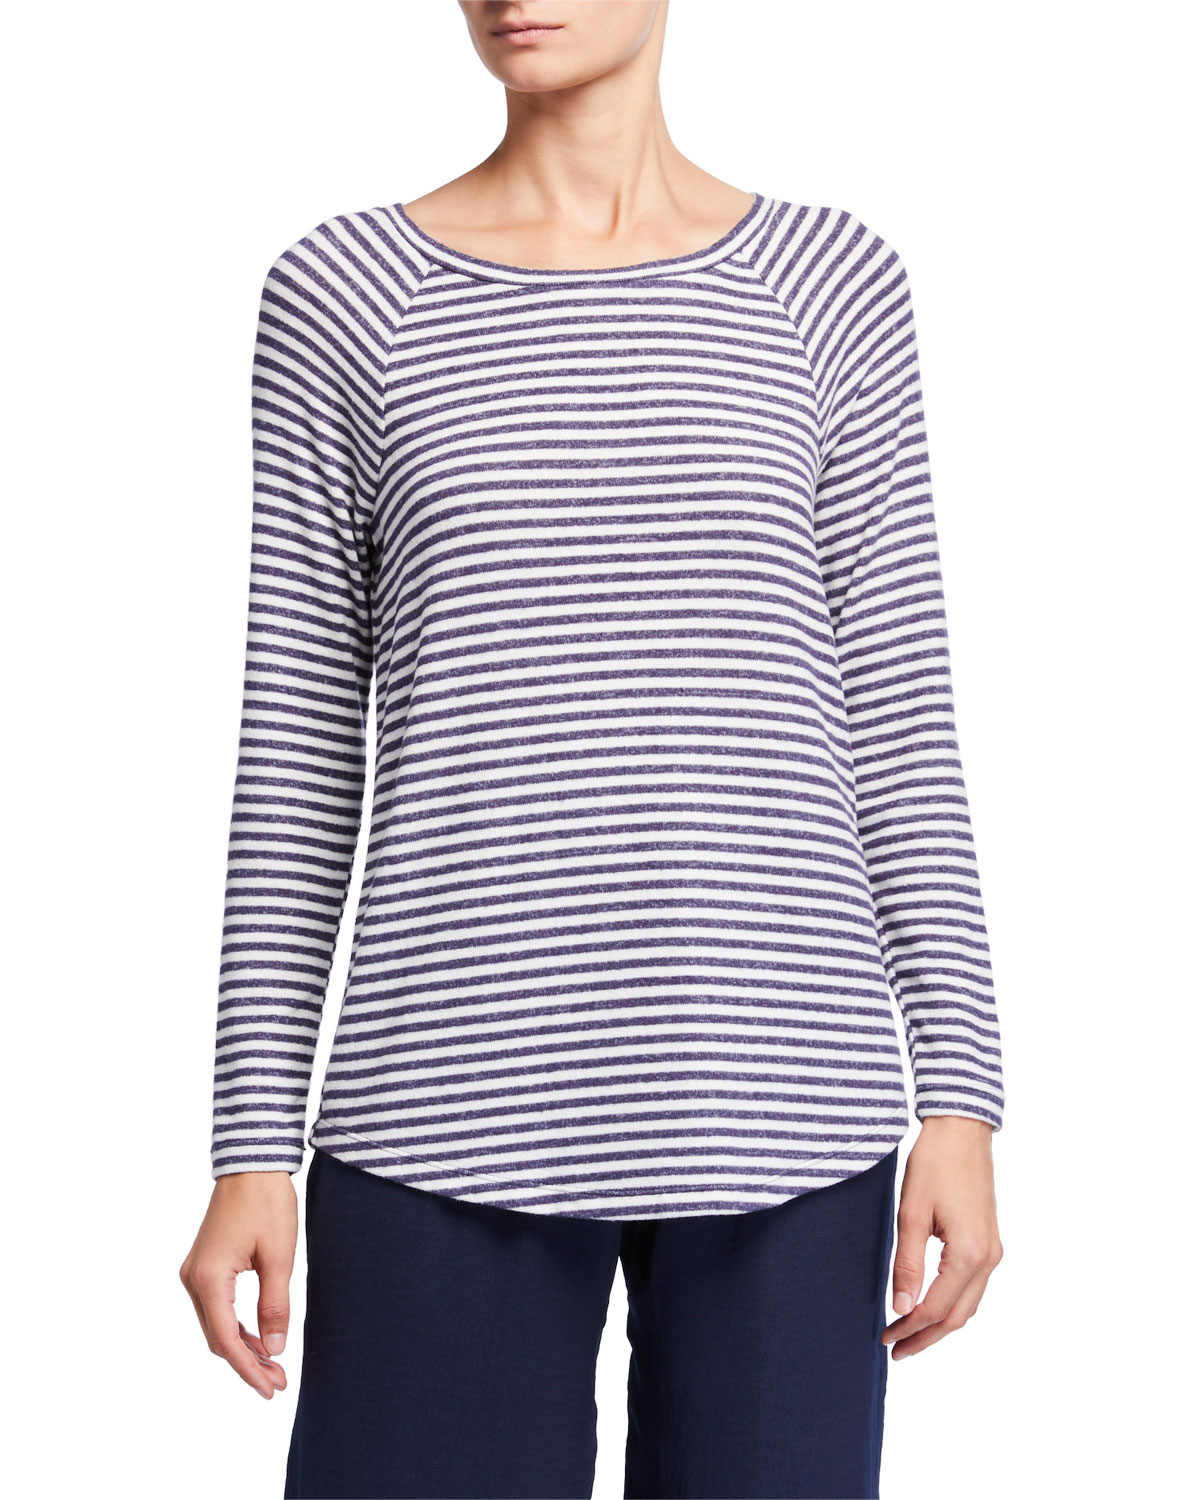 Nic + Zoe PLUS SIZE RELAX IN STRIPED LONG-SLEEVE TOP